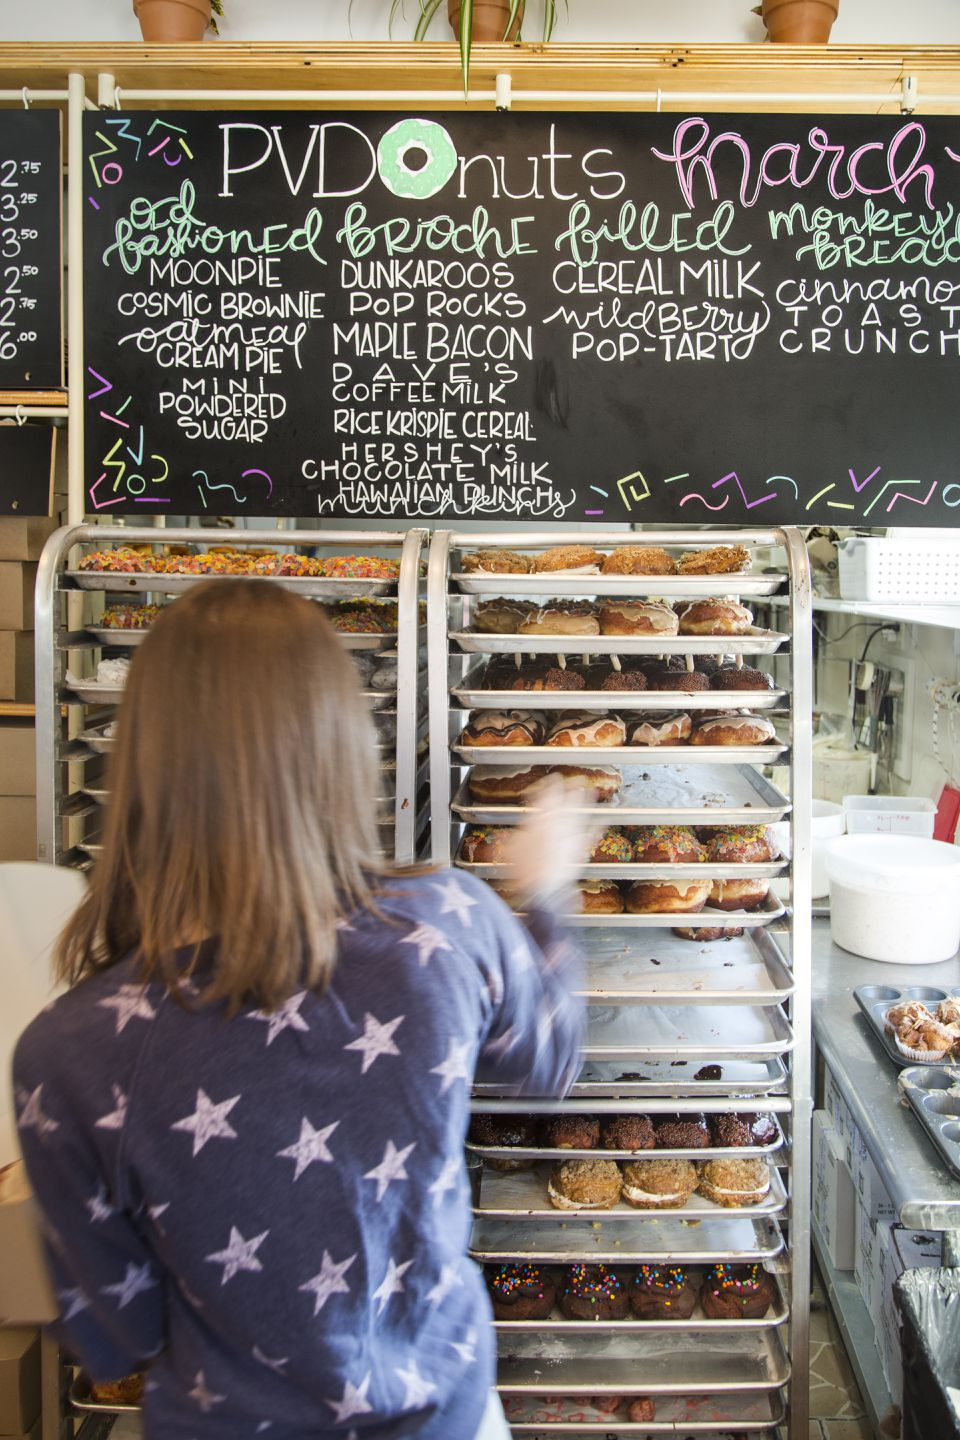 For sheer creativity, it's hard to beat PVDonuts, where trays of fresh doughnuts are laden with sweet creations like Pop Rocks and Rice Krispie Cereal.